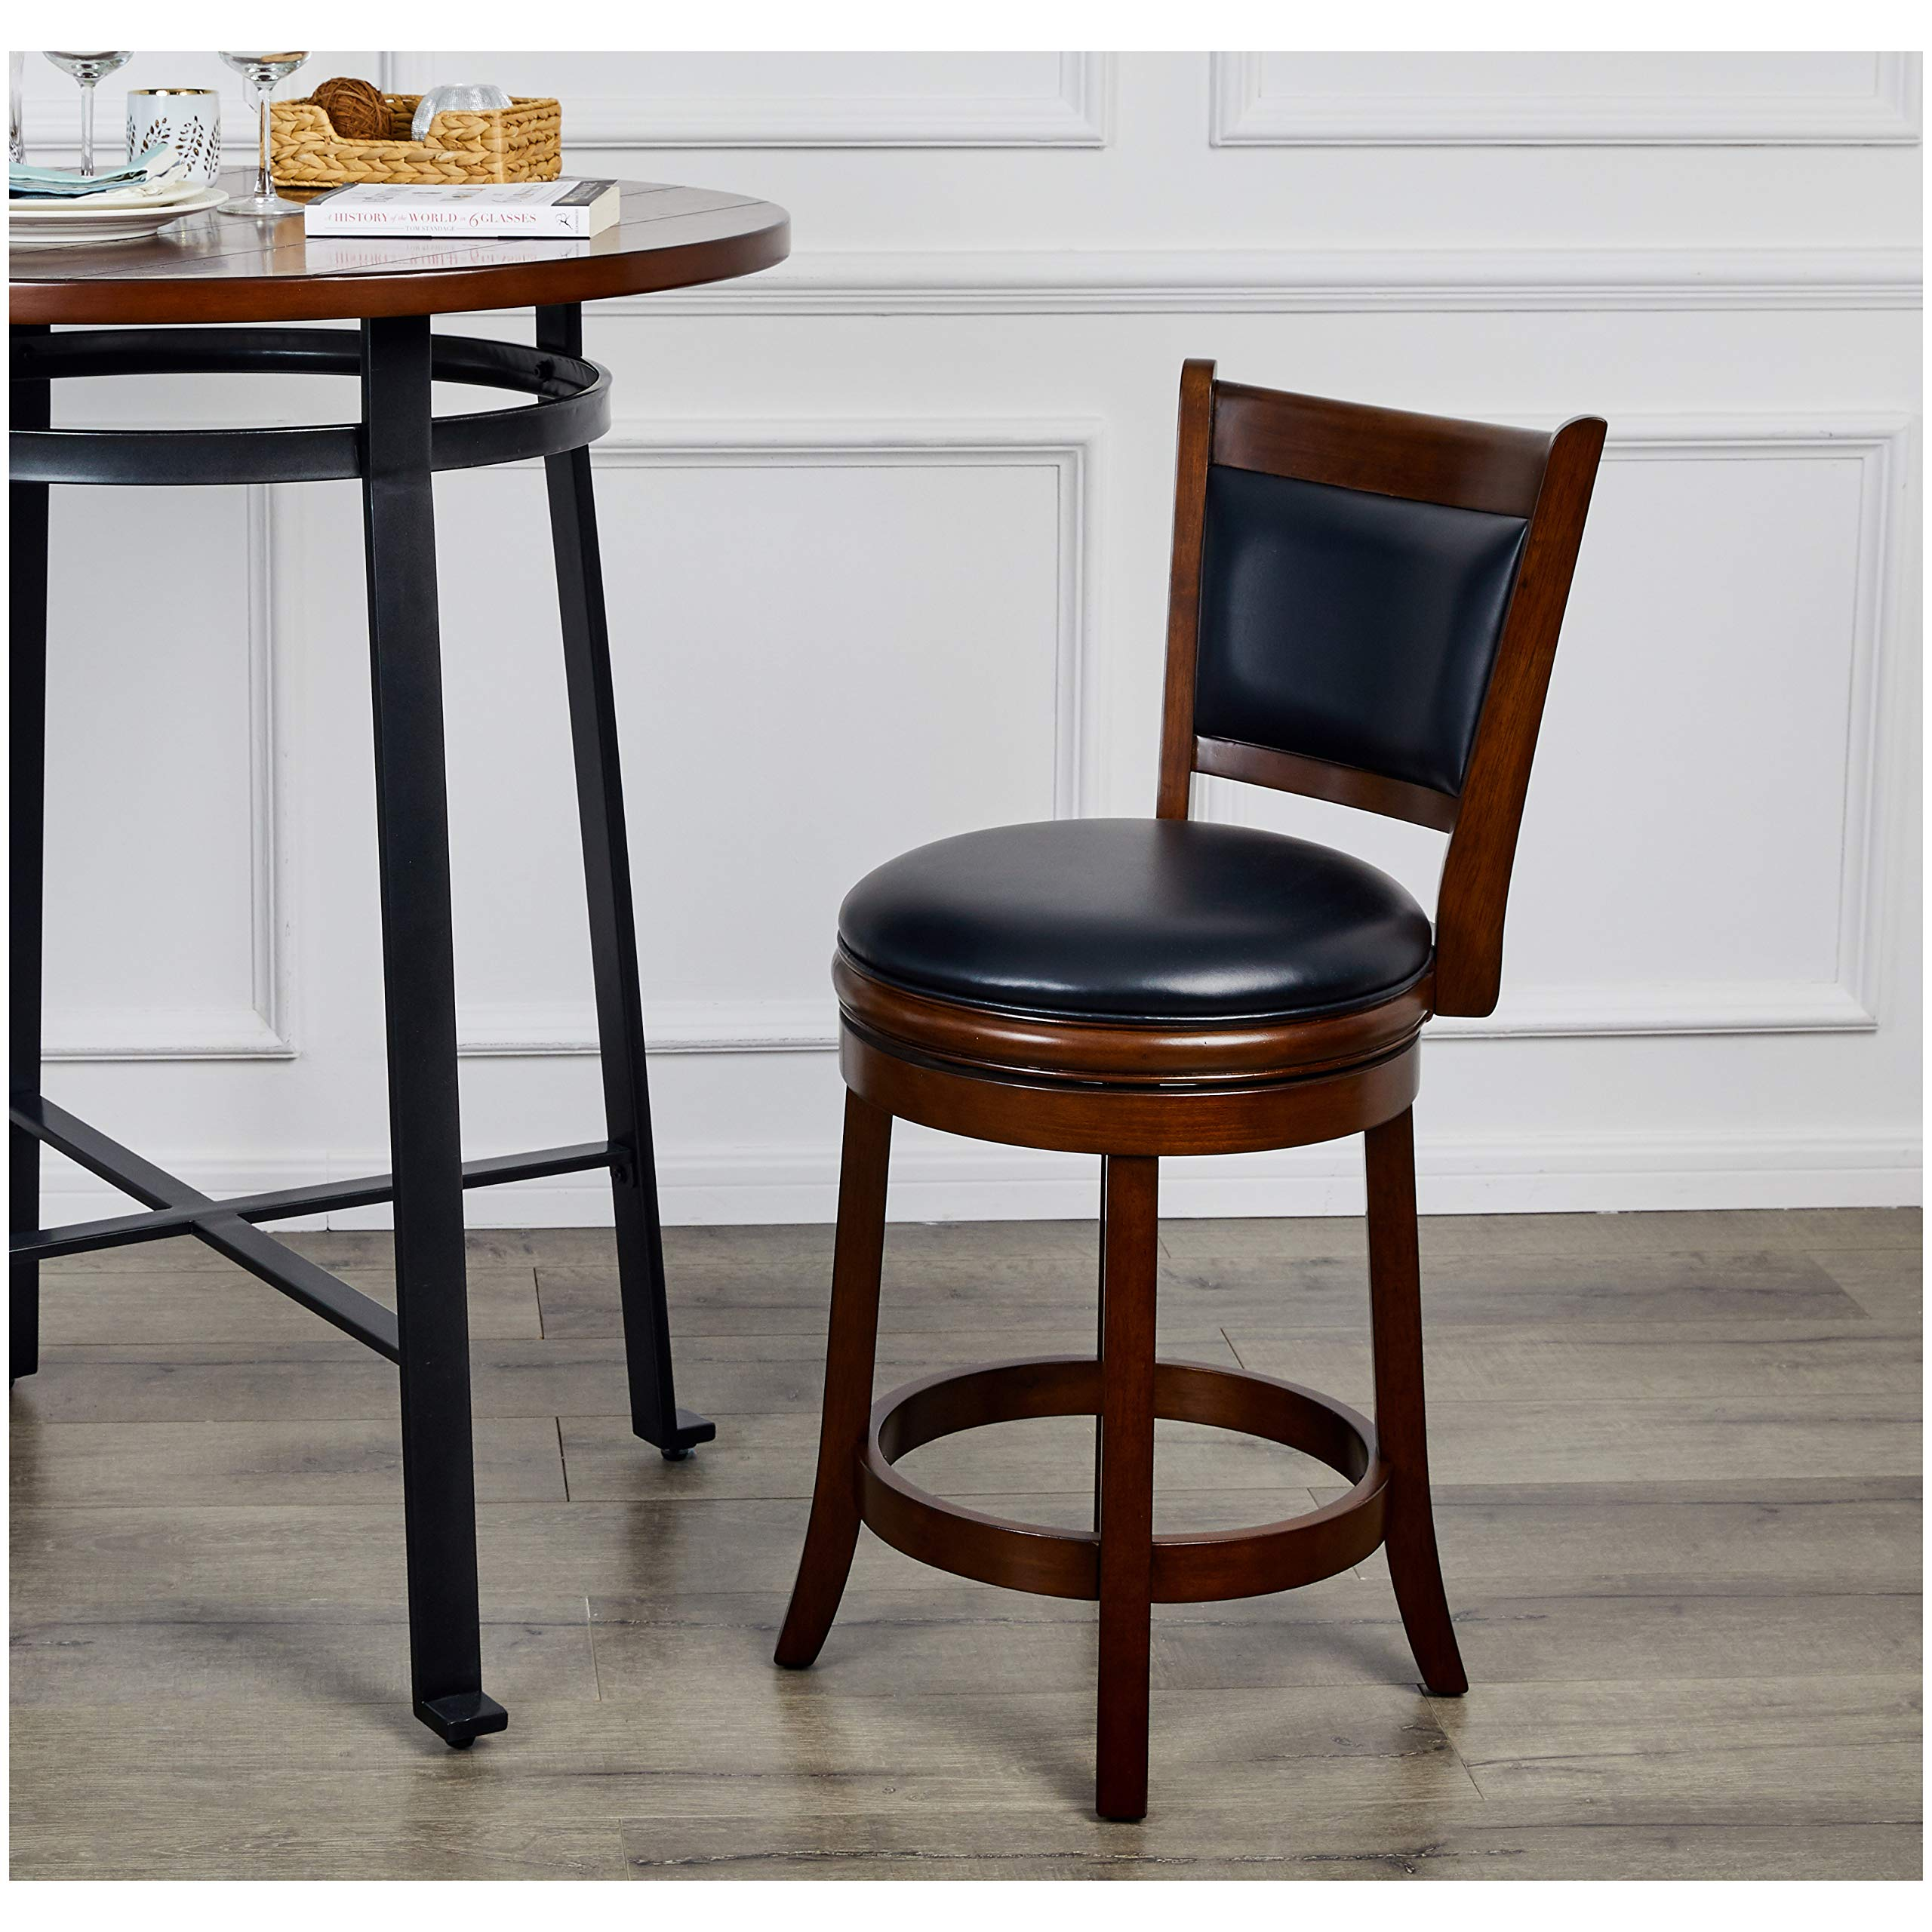 Ball & Cast HSA-1102B-2 Stool, 24'', Cappuccino by Ball & Cast (Image #2)